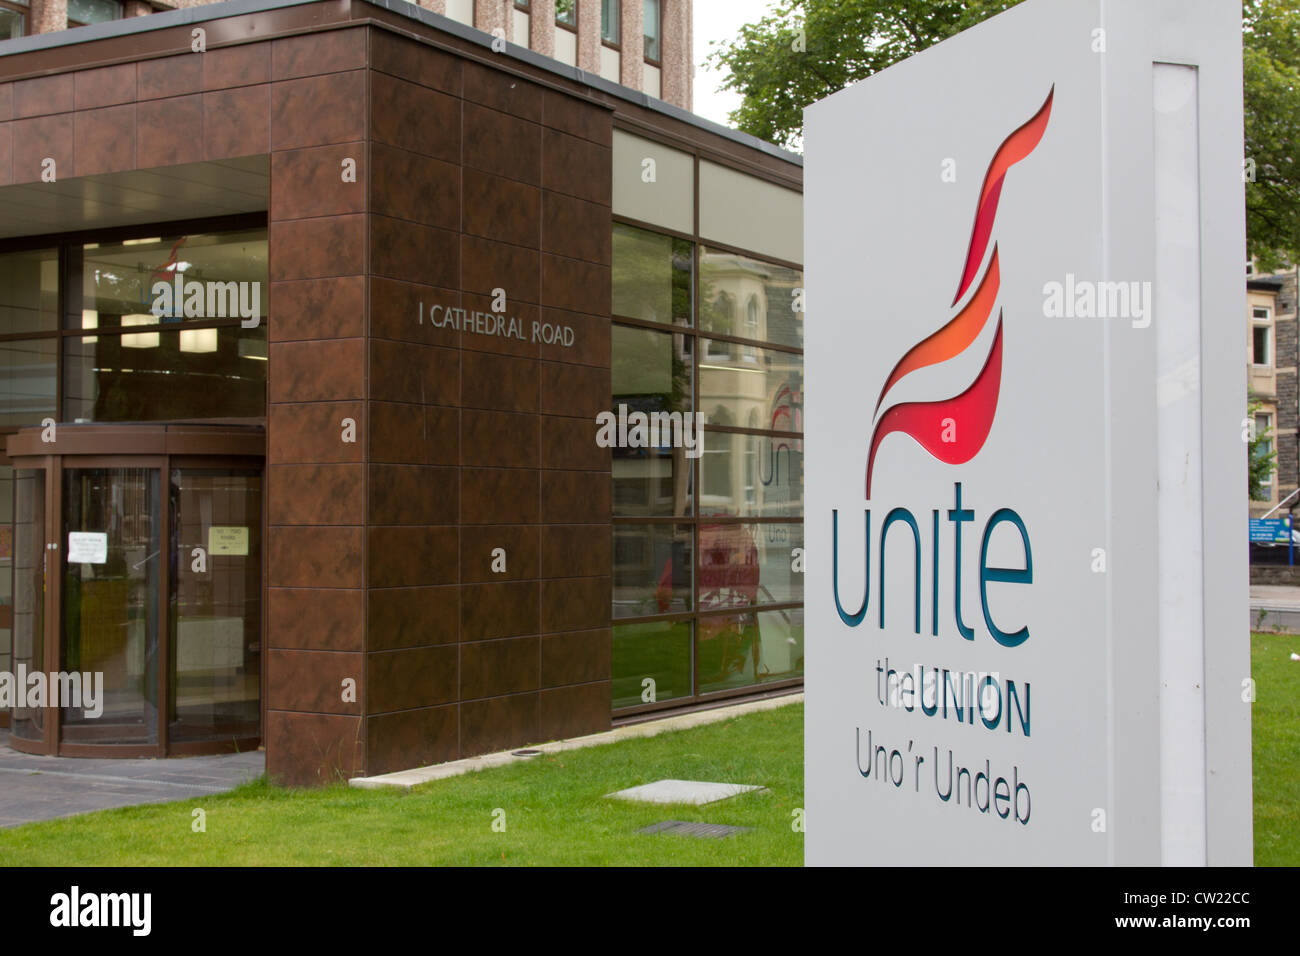 Unite trades union HQ in Cathedral Road, Cardiff - Stock Image